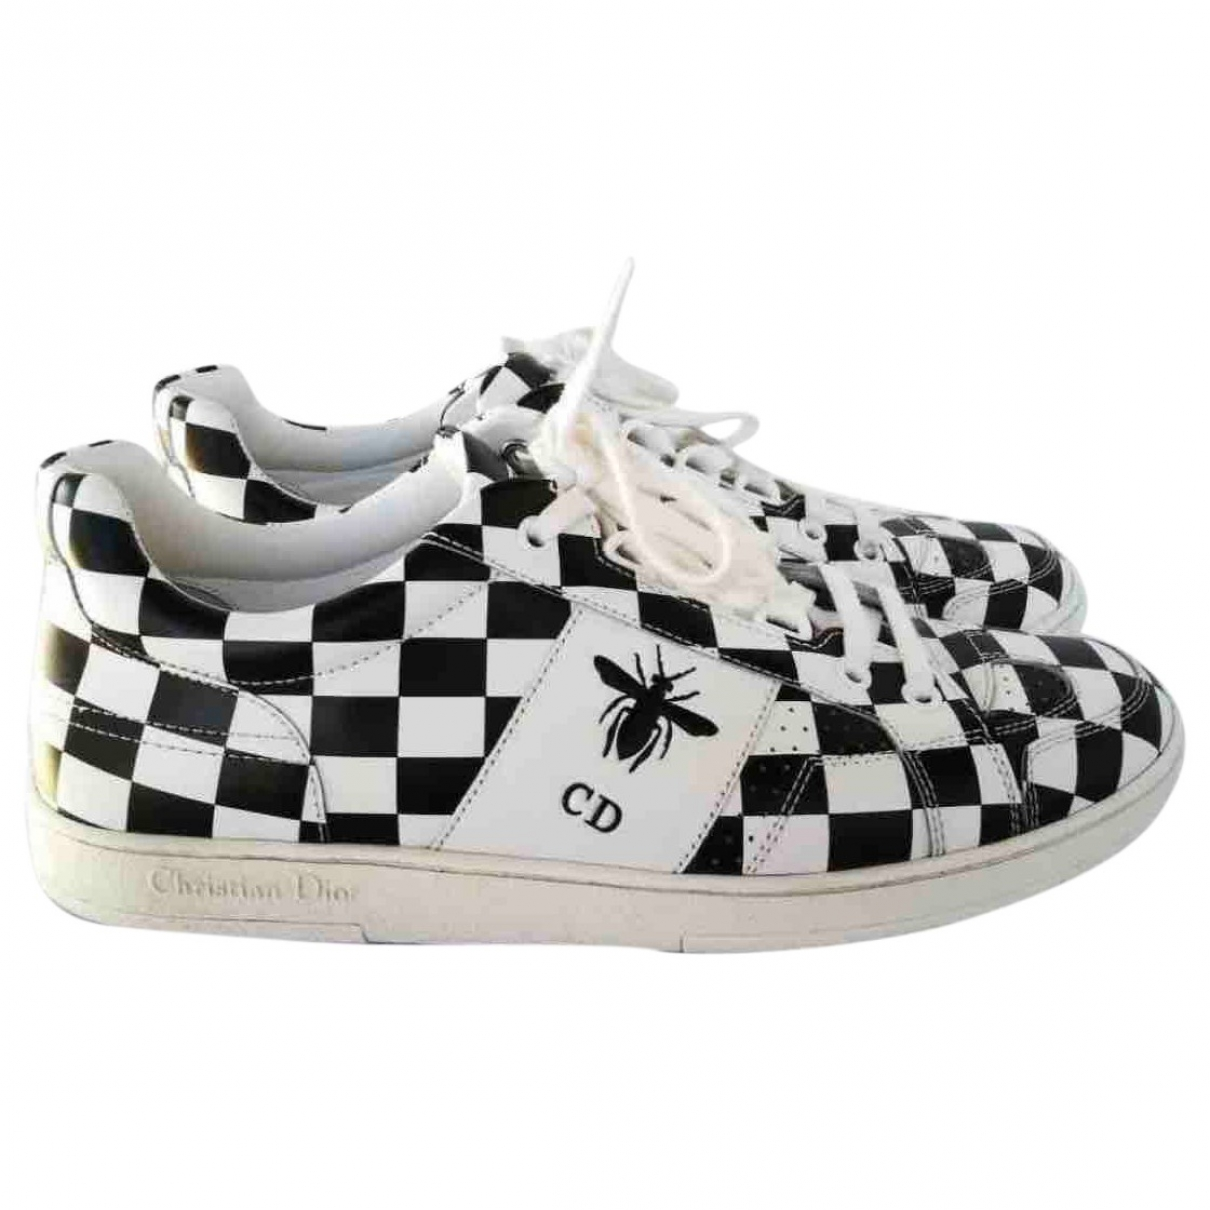 Dior Dior D-Bee White Leather Trainers for Women 38.5 EU